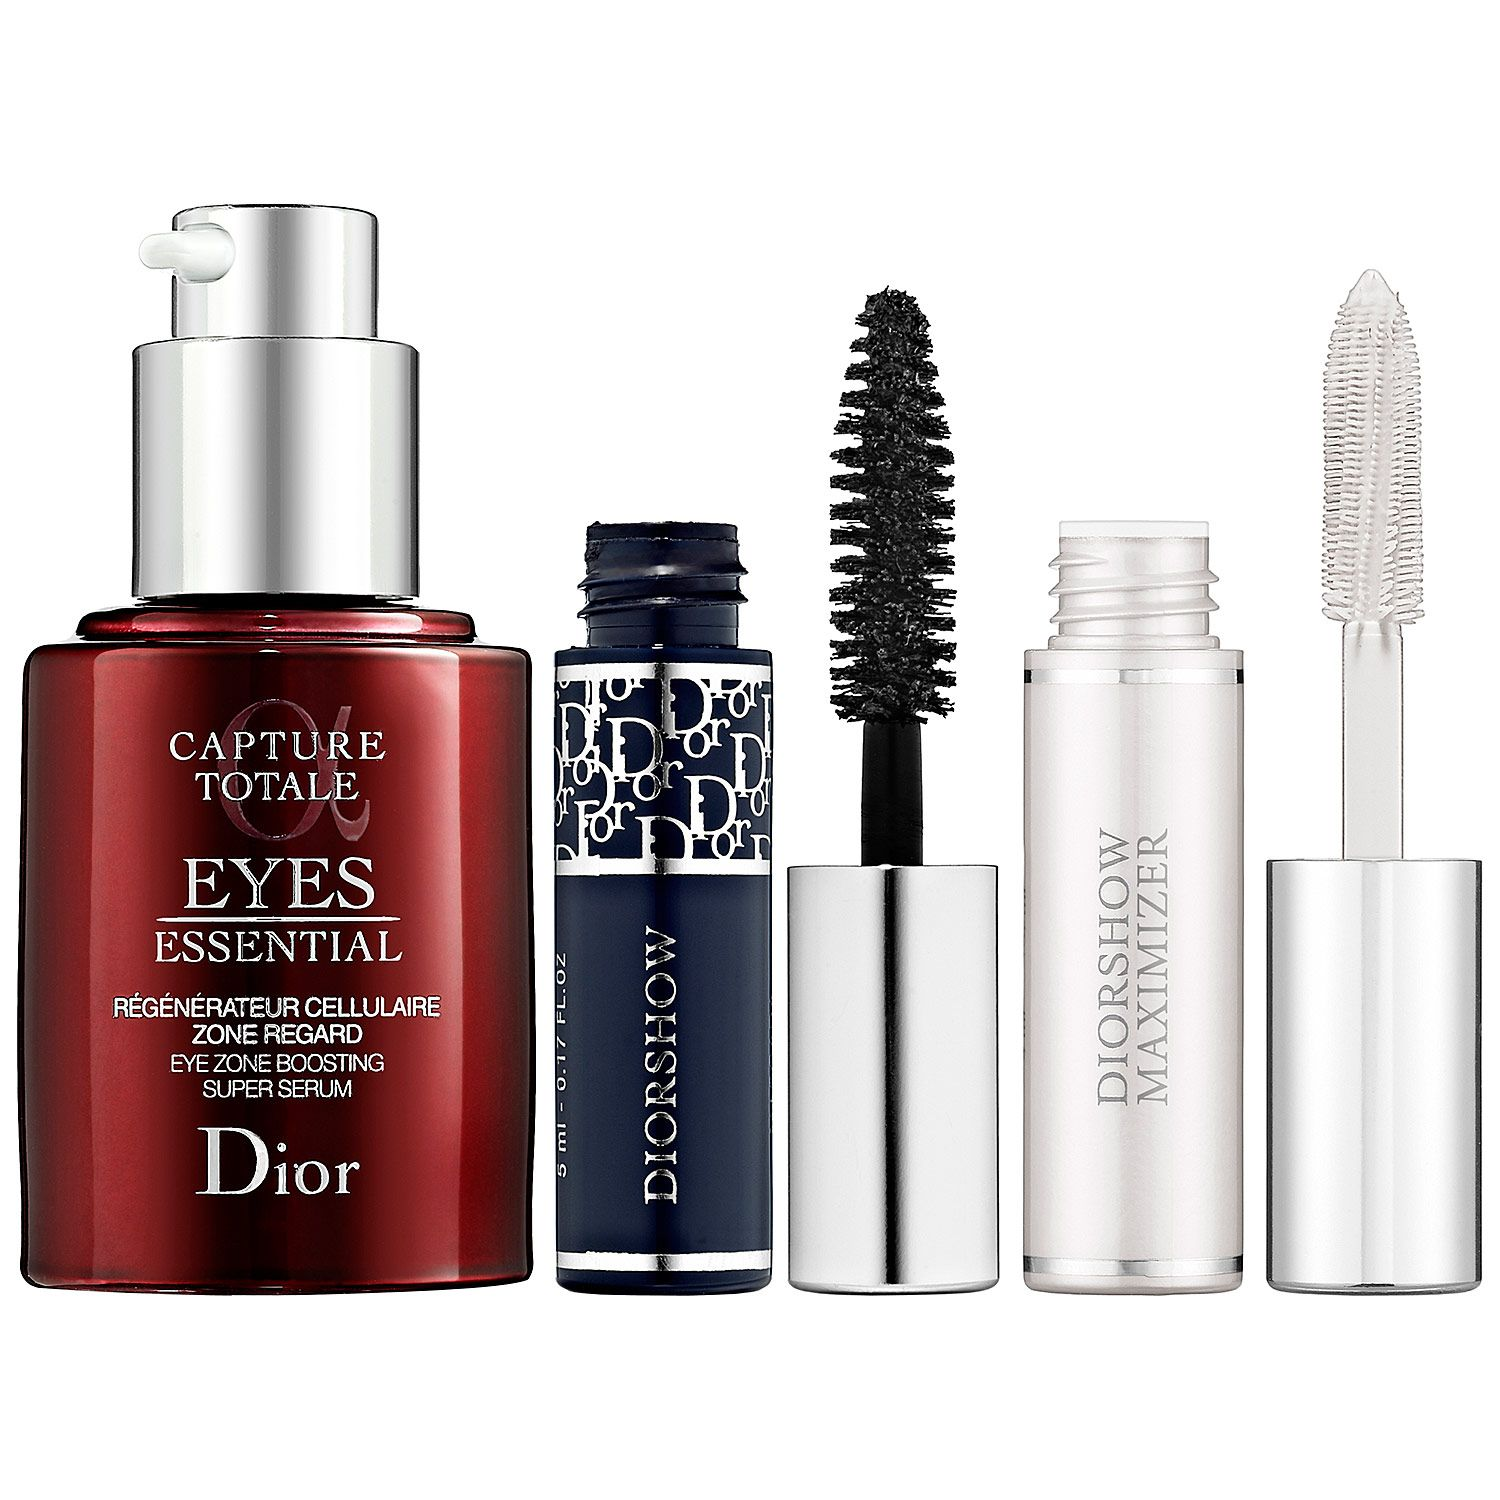 New at Sephora Christian Dior Capture Totale Eyes